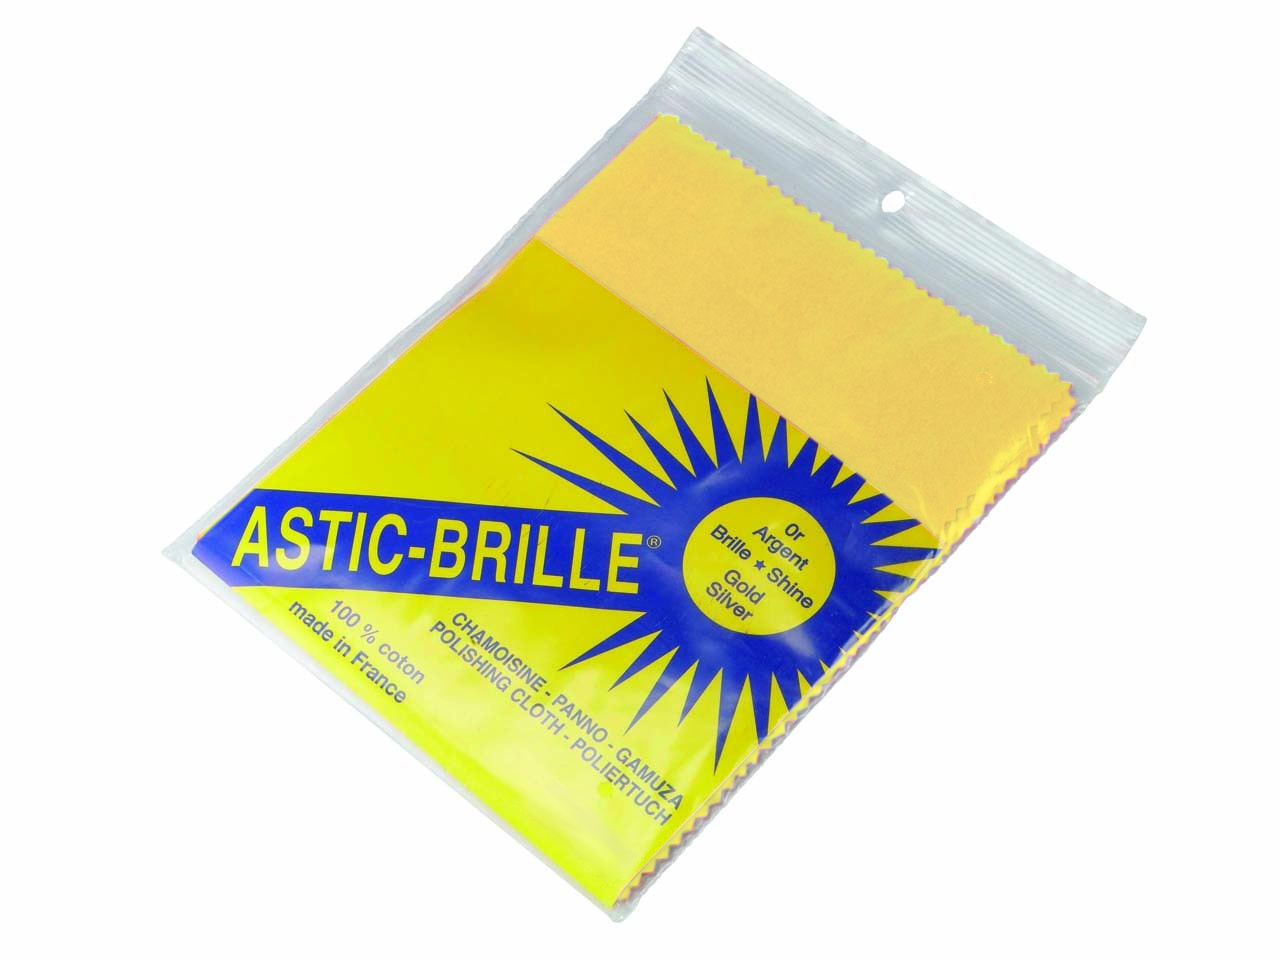 Astic brille grand format, 380 x 450 mm